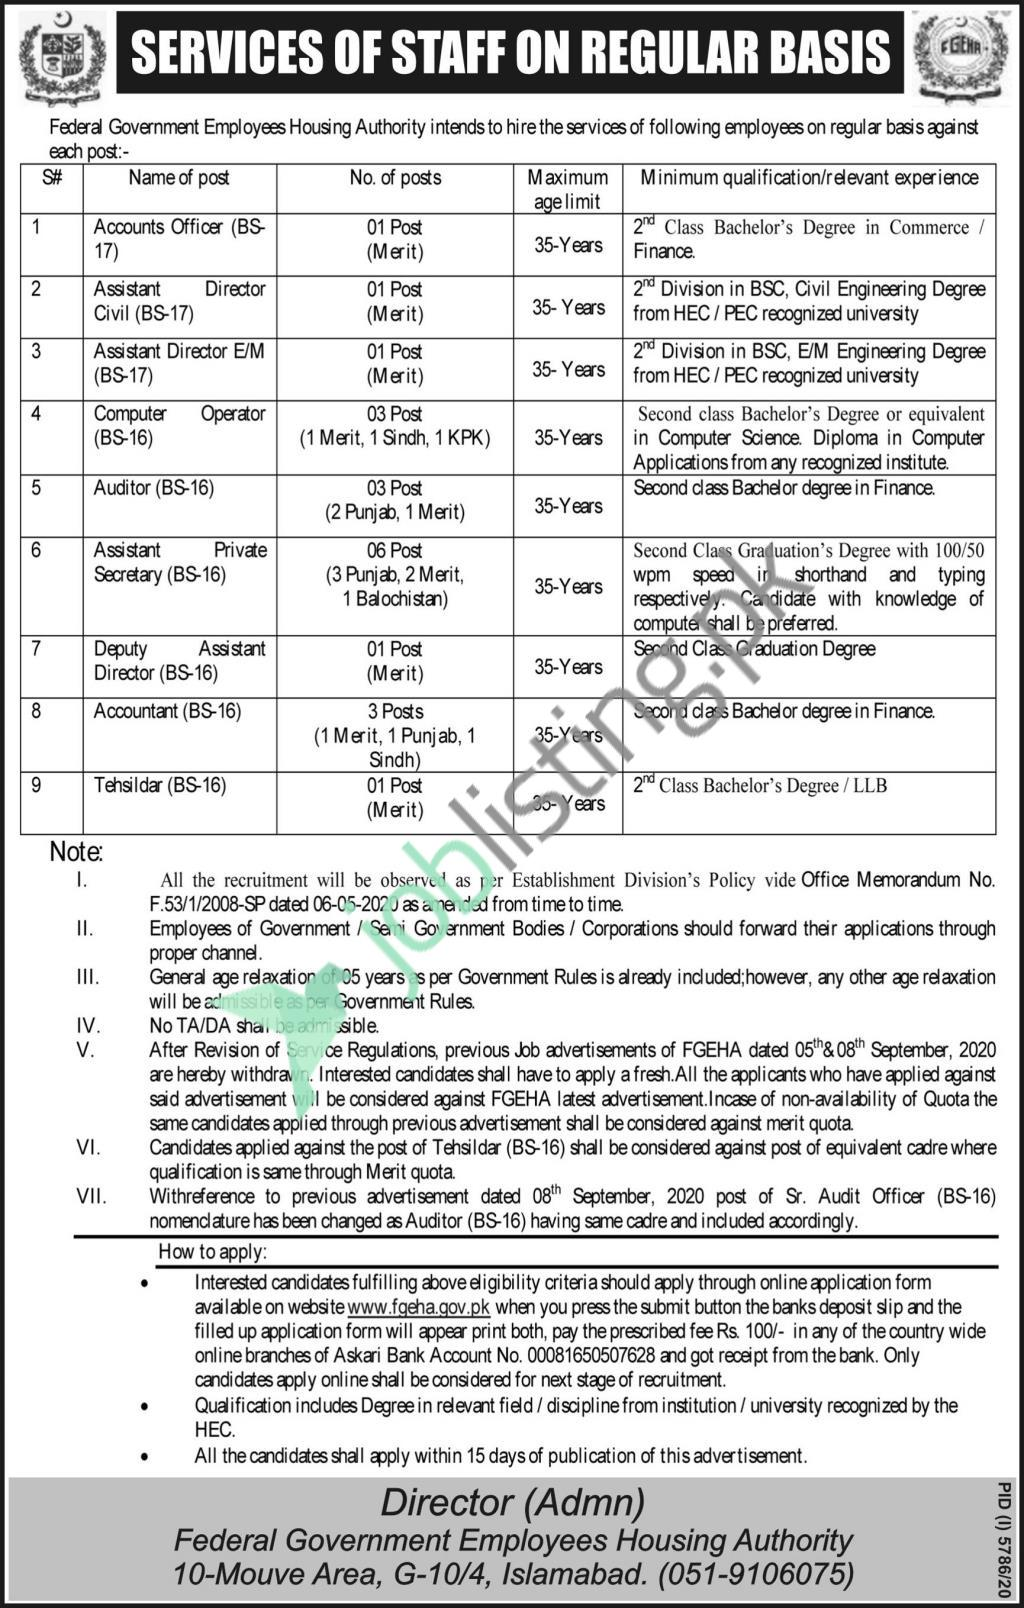 Situations Vacant - FGEHA Federal Govt Employees Housing Authority Islamabad